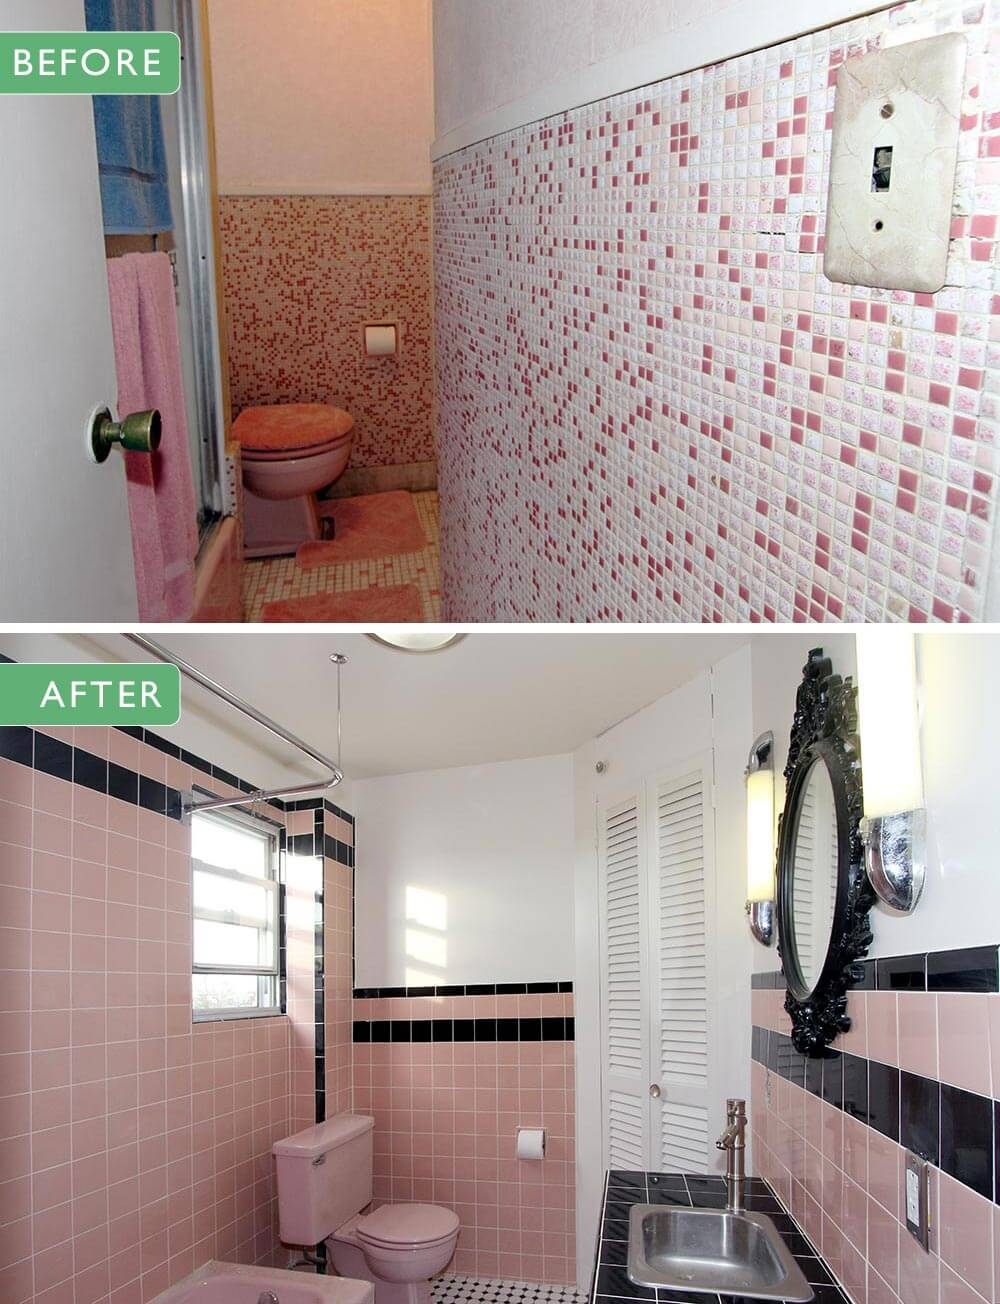 Local Bathroom Remodeling Where To Find Vintage Bathroom Tile Remember To Check Your Local .